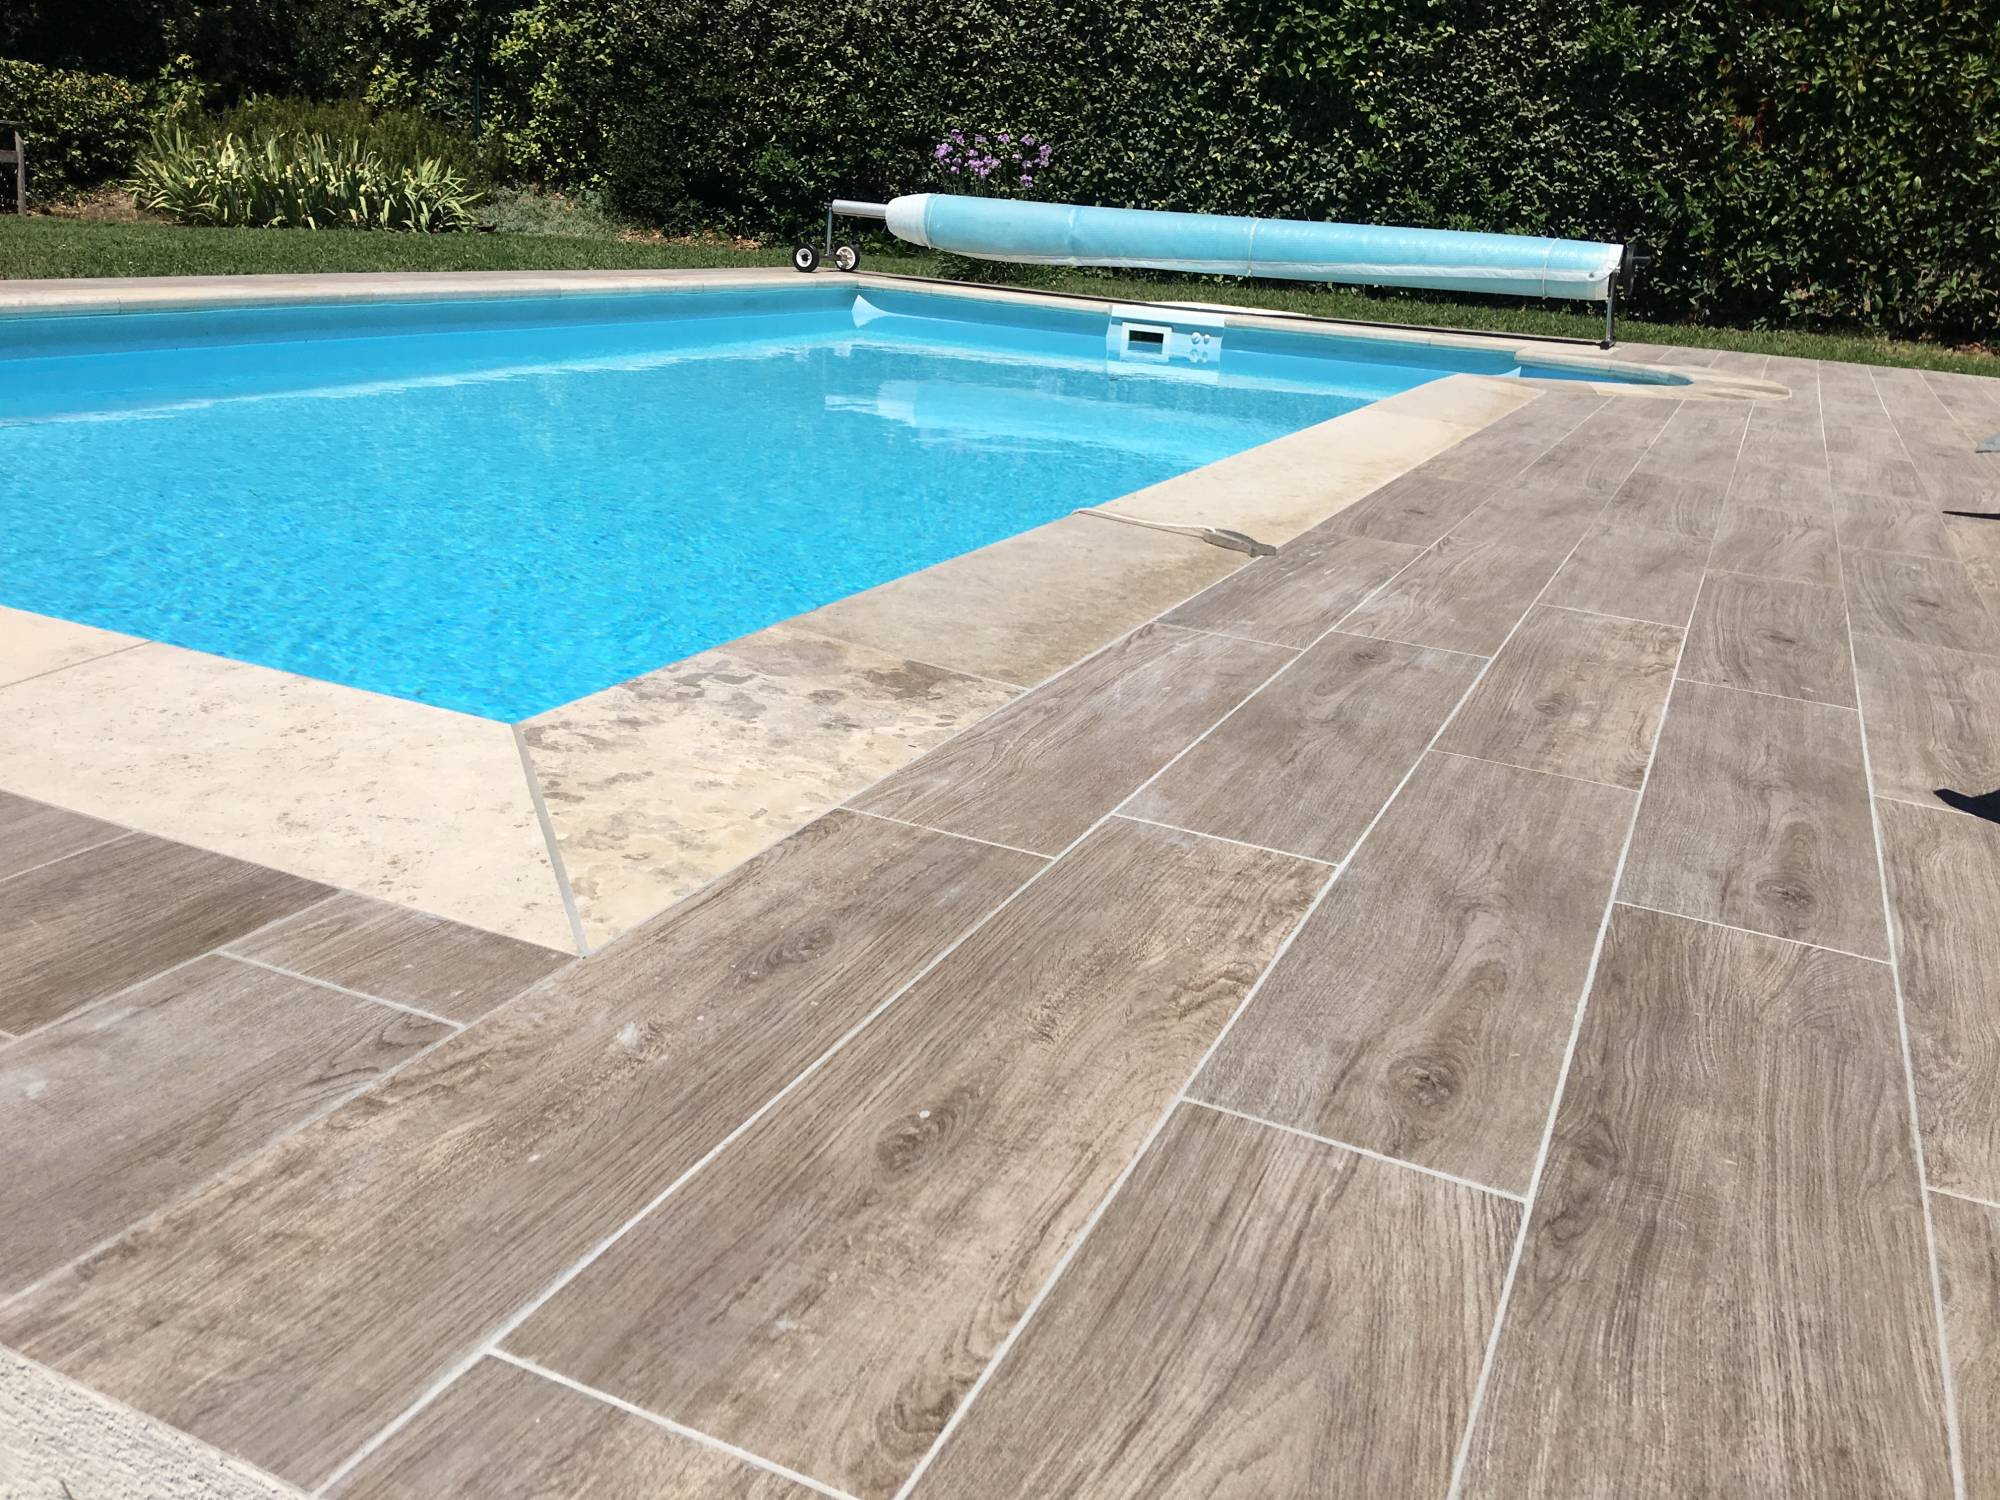 Carrelage ceramique pour piscine id es for Piscine reflea